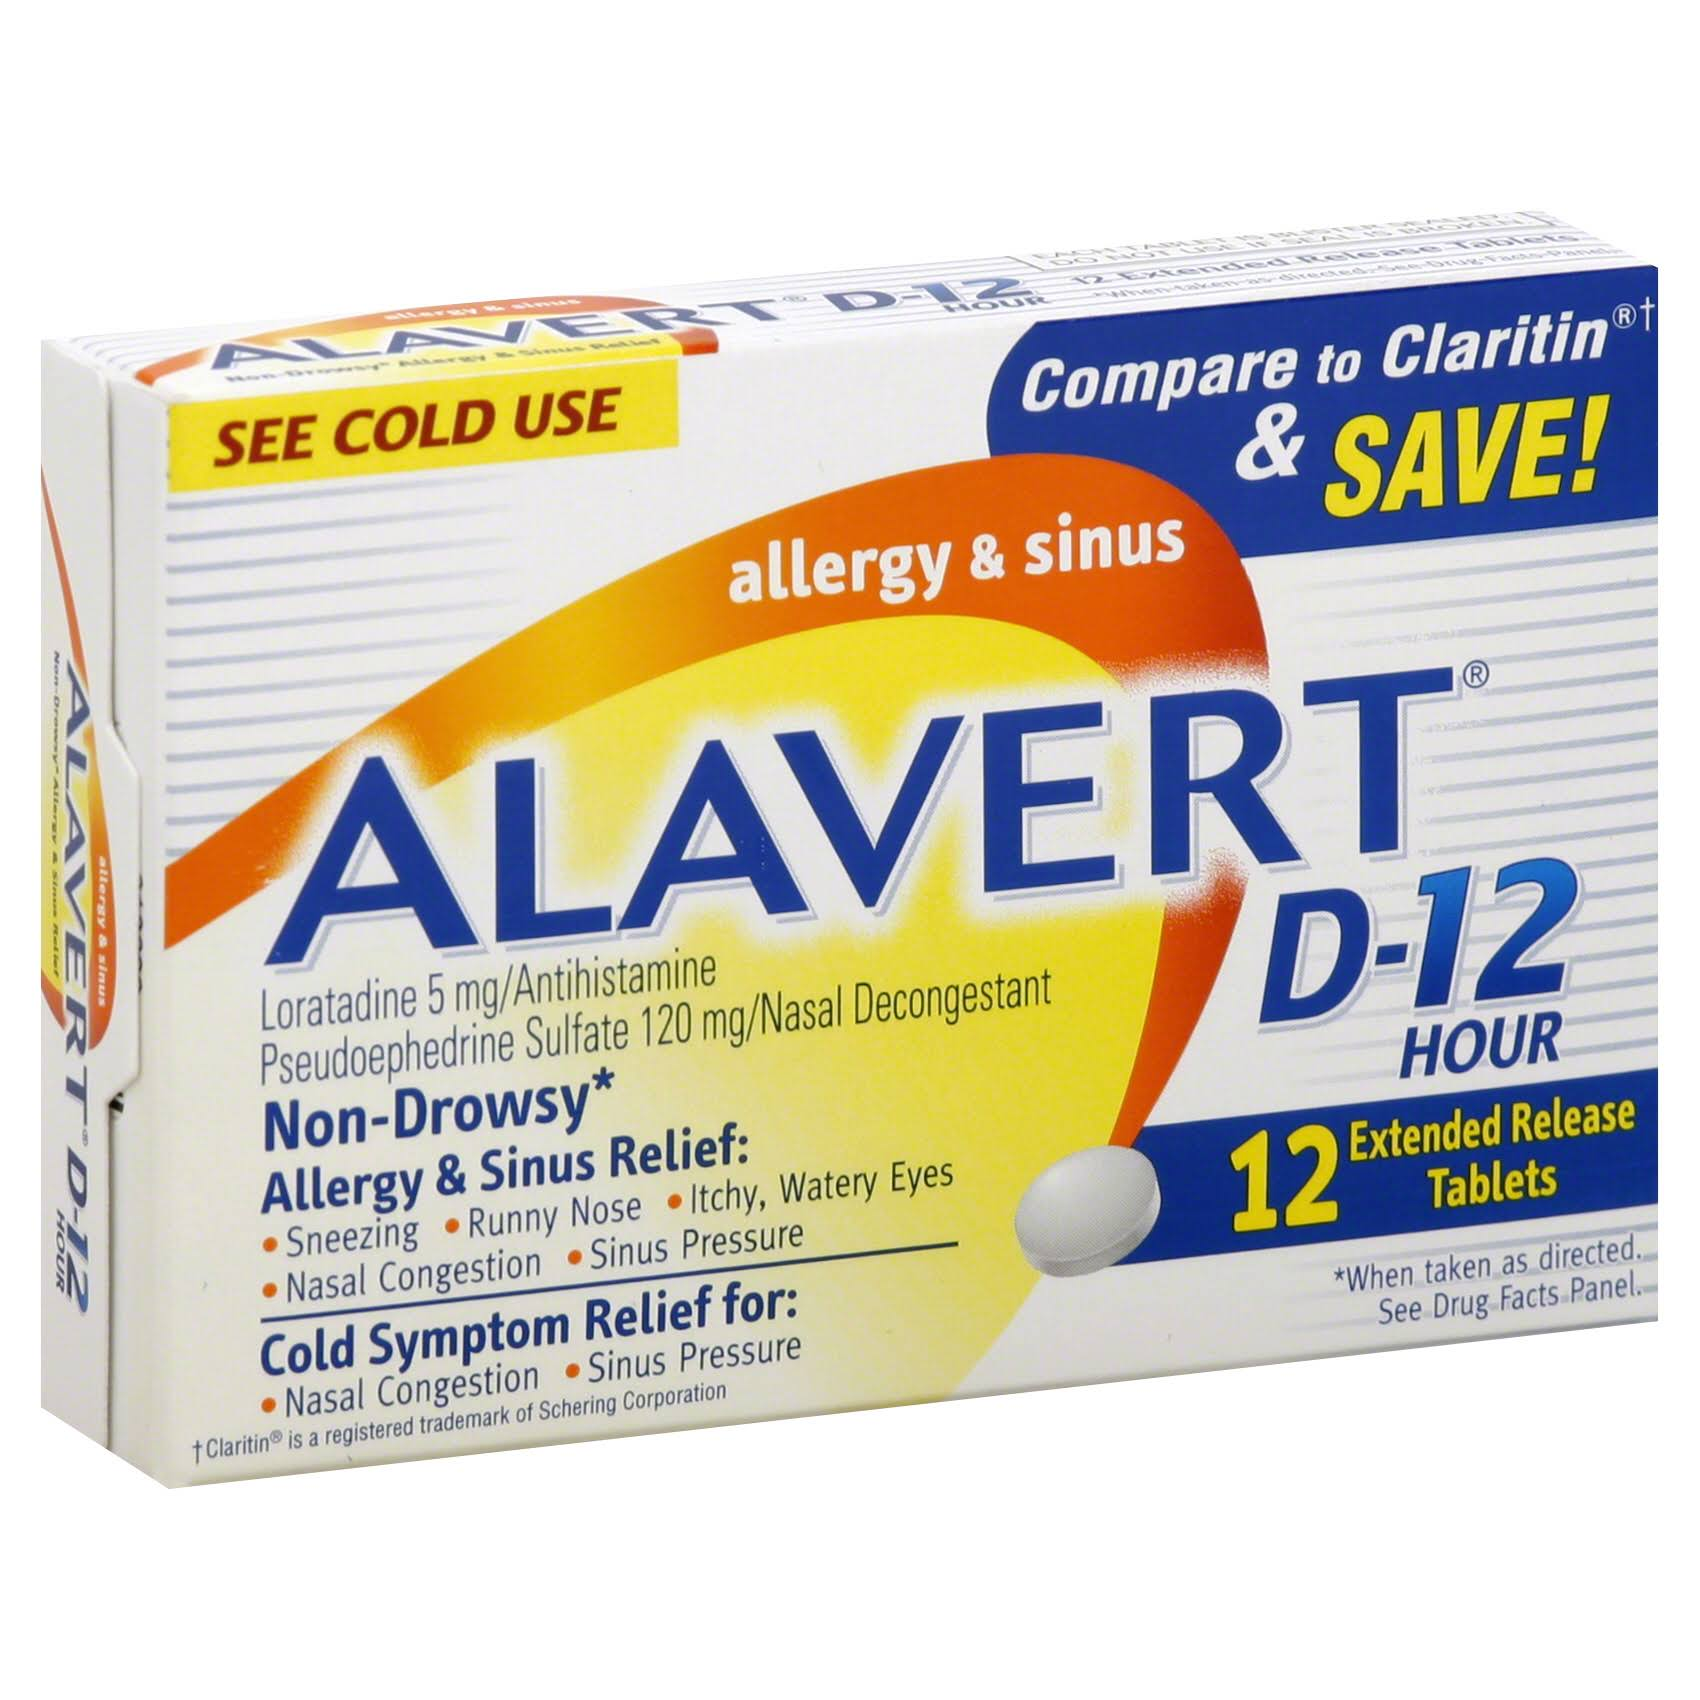 Alavert D-12 Allergy & Sinus, Non-Drowsy, 12 Hour, Extended Release Tablets - 12 tablets